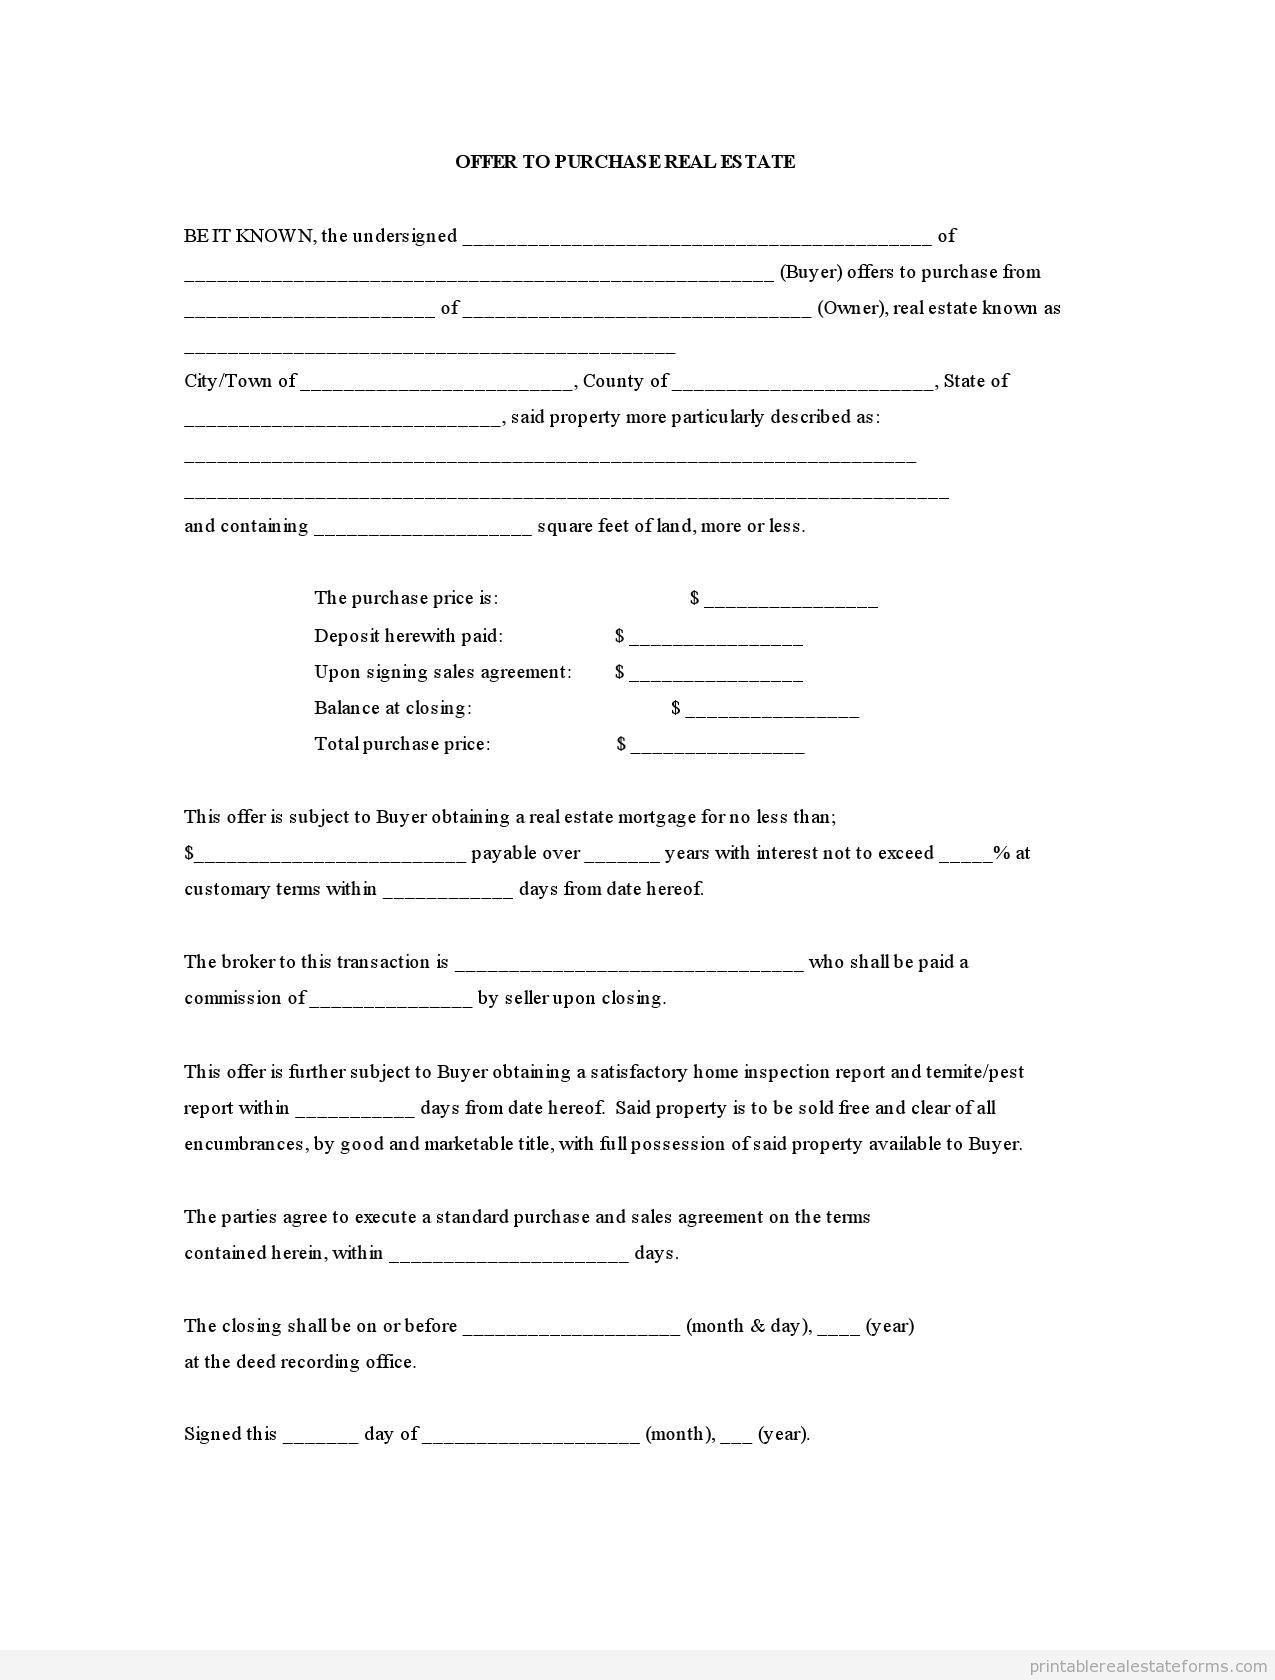 Get High Quality Printable Offer To Purchase Real Estate Form Editable Sample Blank Word Template Ready To Fill Out Real Estate Forms Legal Forms Real Estate